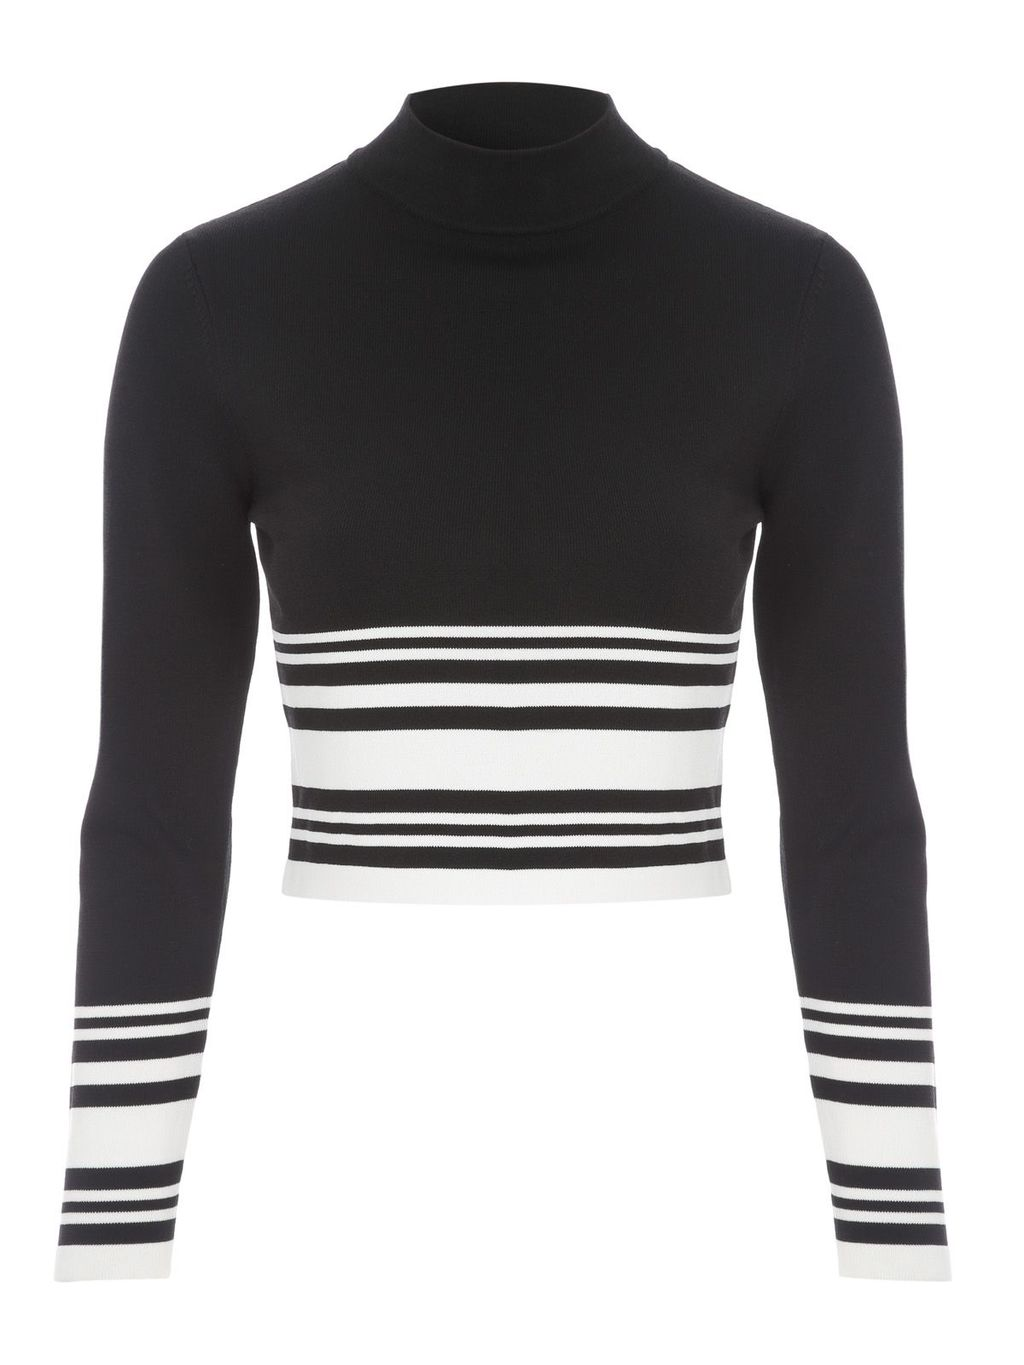 Co Ord Long Sleeve Jumper Style Top, Black/White - pattern: horizontal stripes; neckline: high neck; length: cropped; style: standard; secondary colour: white; predominant colour: black; occasions: casual, creative work; fit: slim fit; sleeve length: long sleeve; sleeve style: standard; texture group: knits/crochet; pattern type: knitted - fine stitch; pattern size: standard; fibres: viscose/rayon - mix; season: s/s 2016; wardrobe: highlight